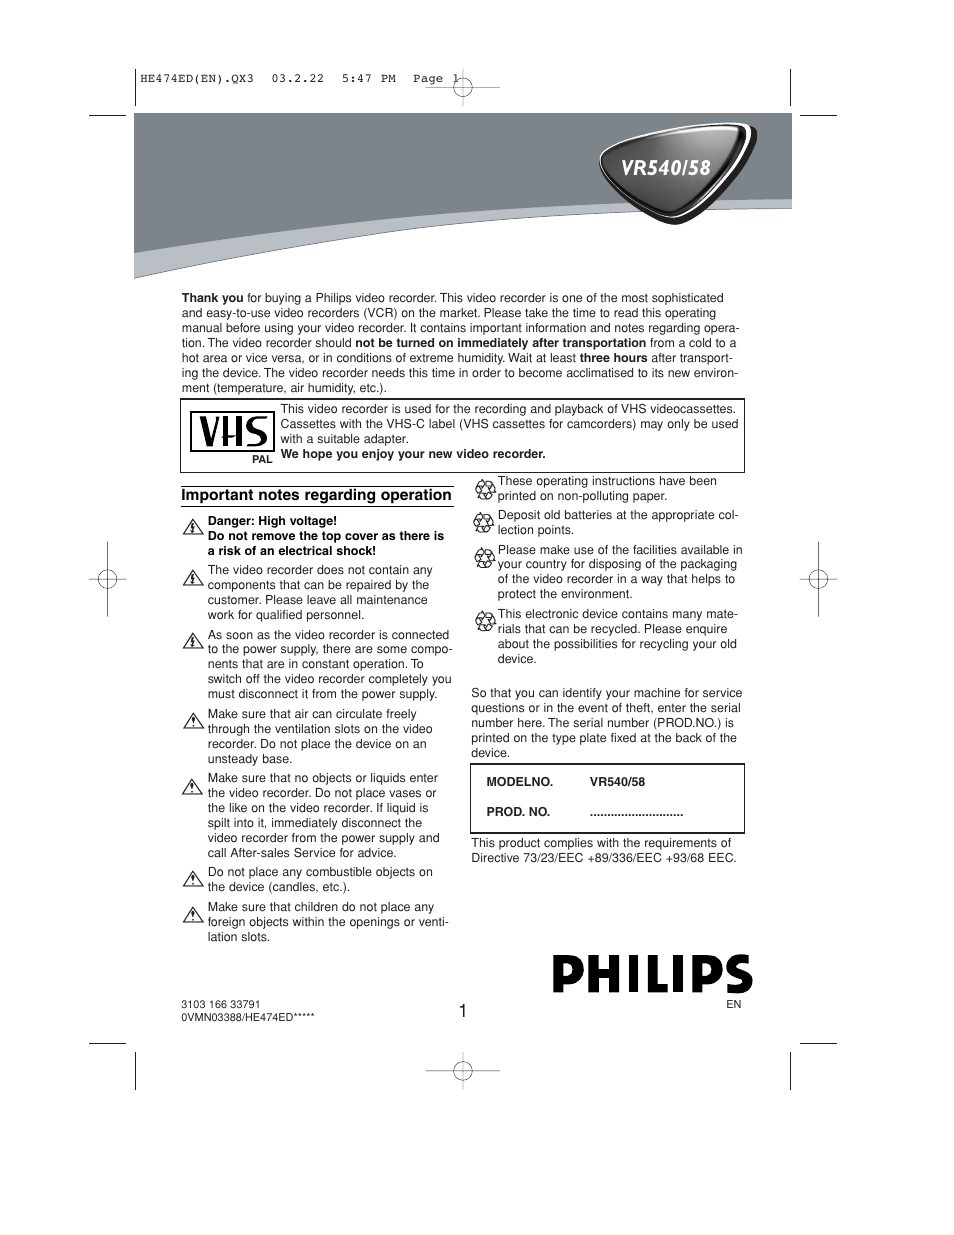 philips vr 540 user manual 16 pages also for vr558 rh manualsdir com Philips Universal Remote Code Manual Philips Universal Remote SRP2003 27 Manual